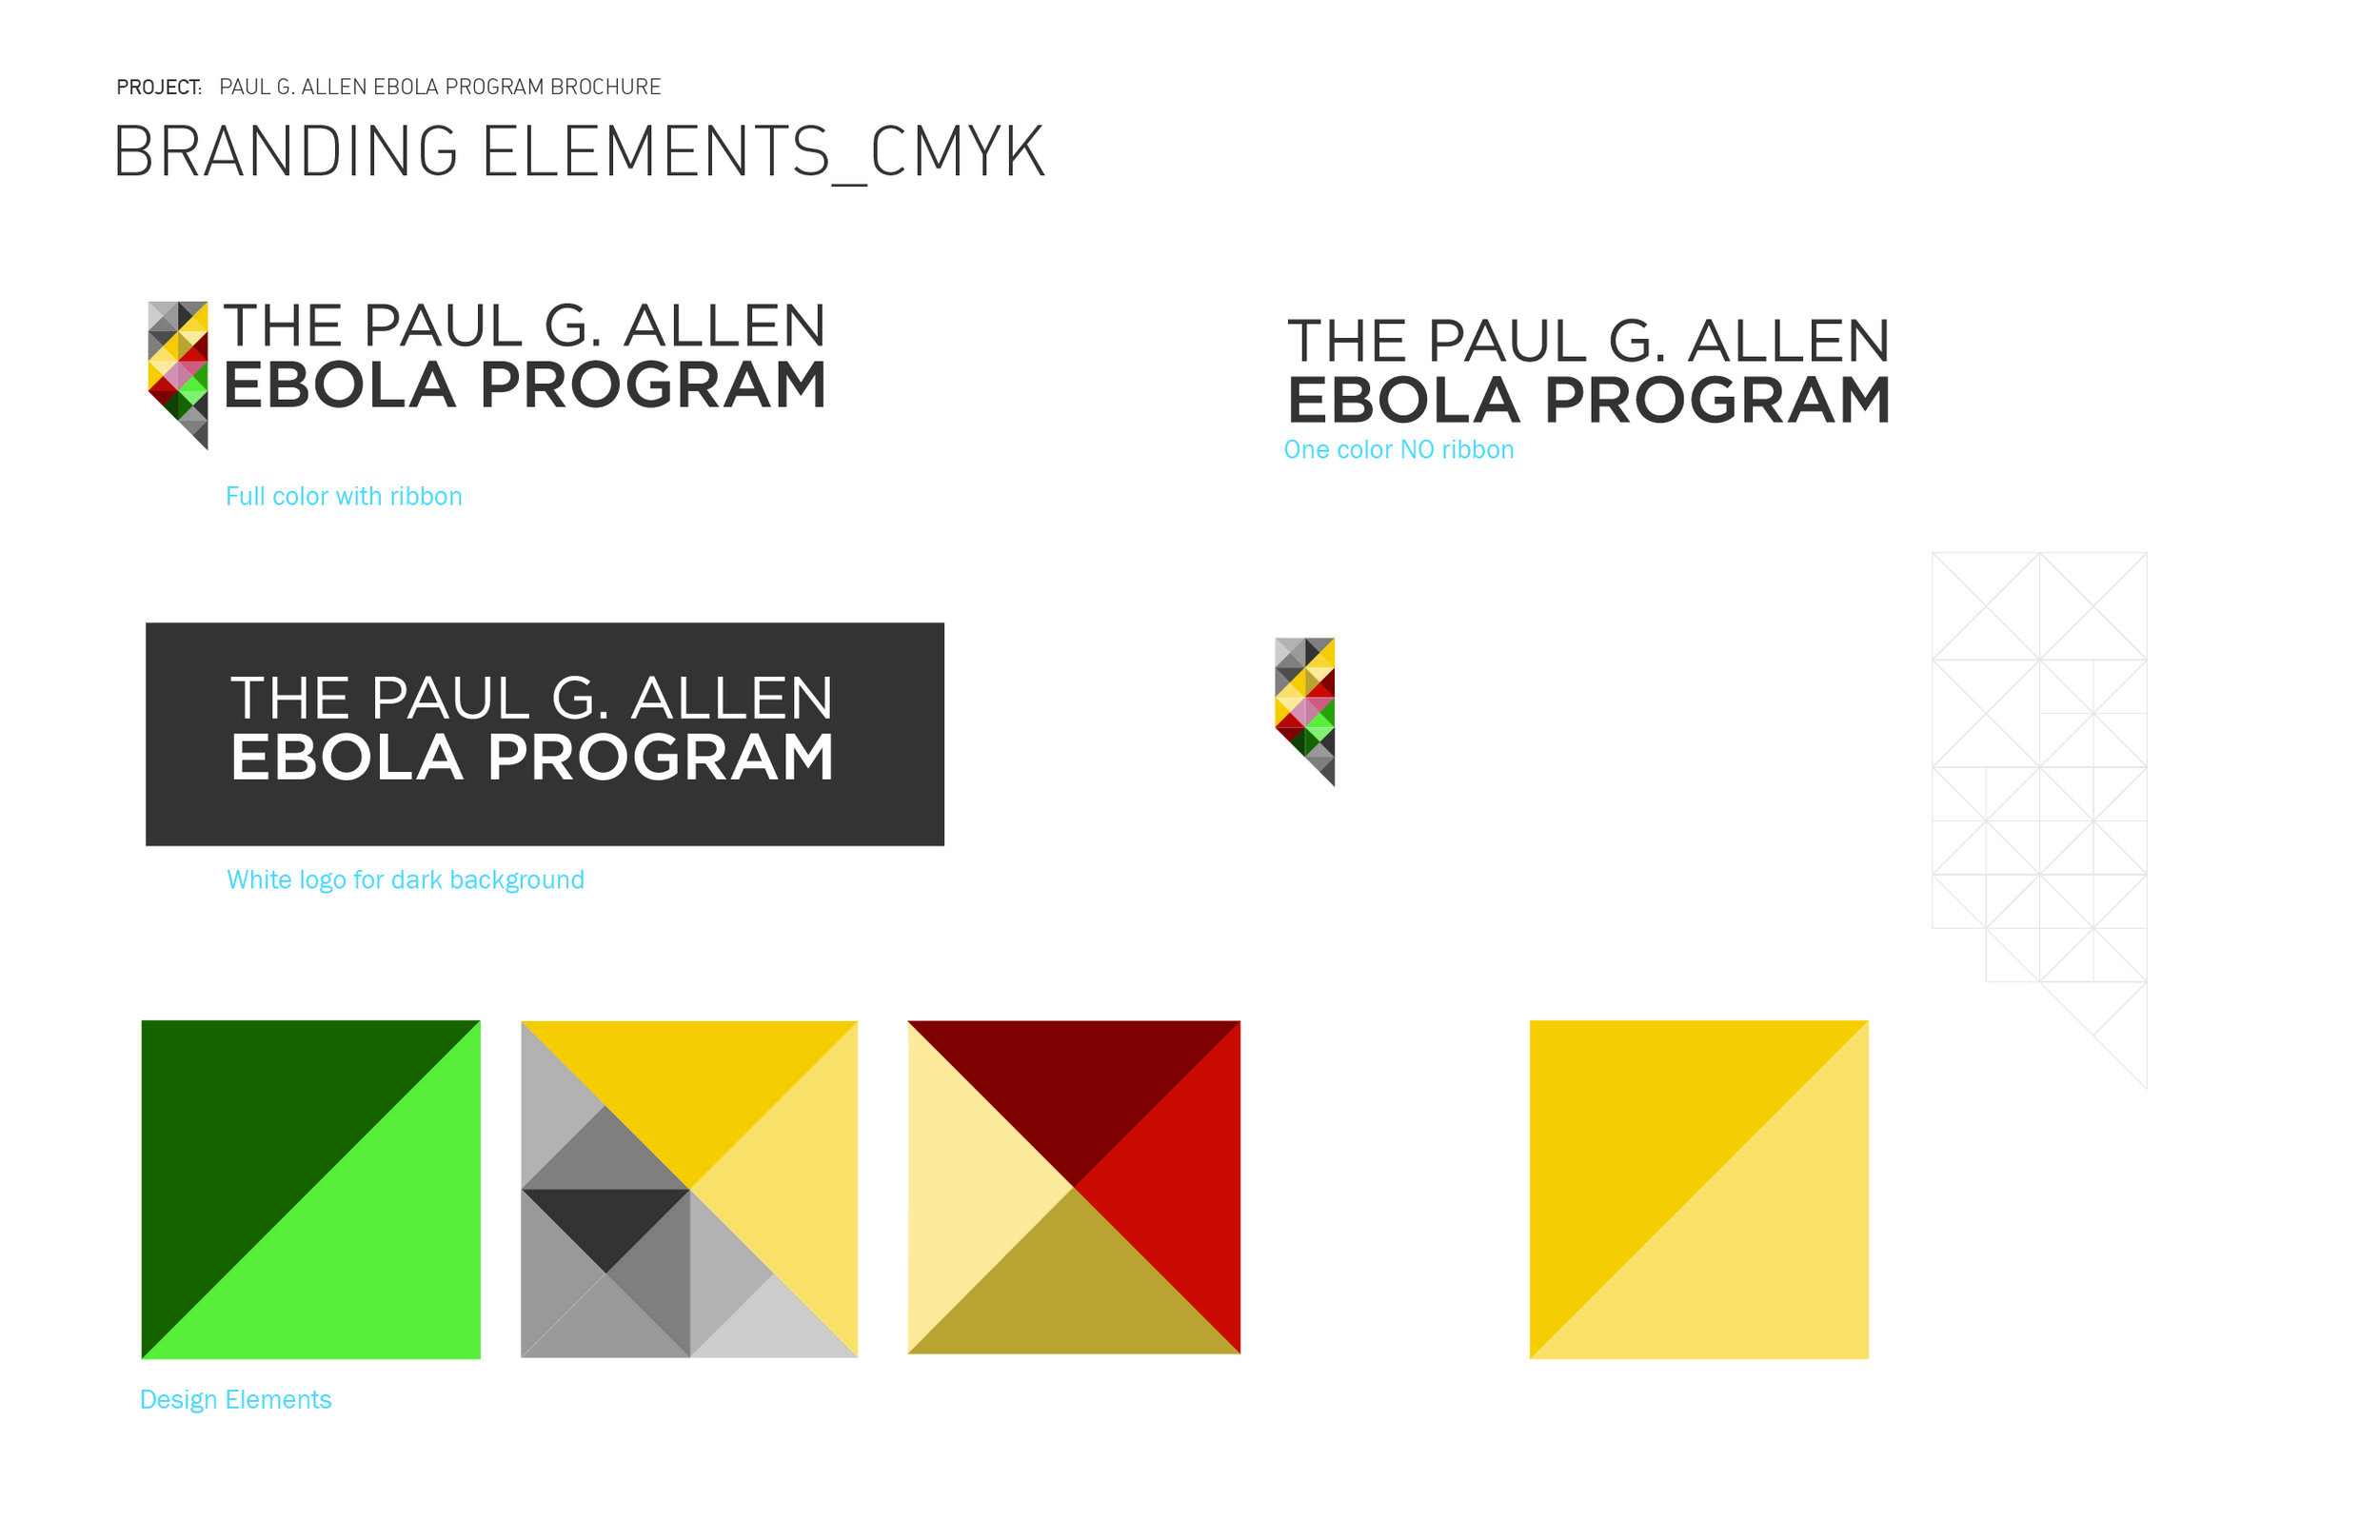 I've included the client's brand guidelines to show how their branding will fold into the overall concept.